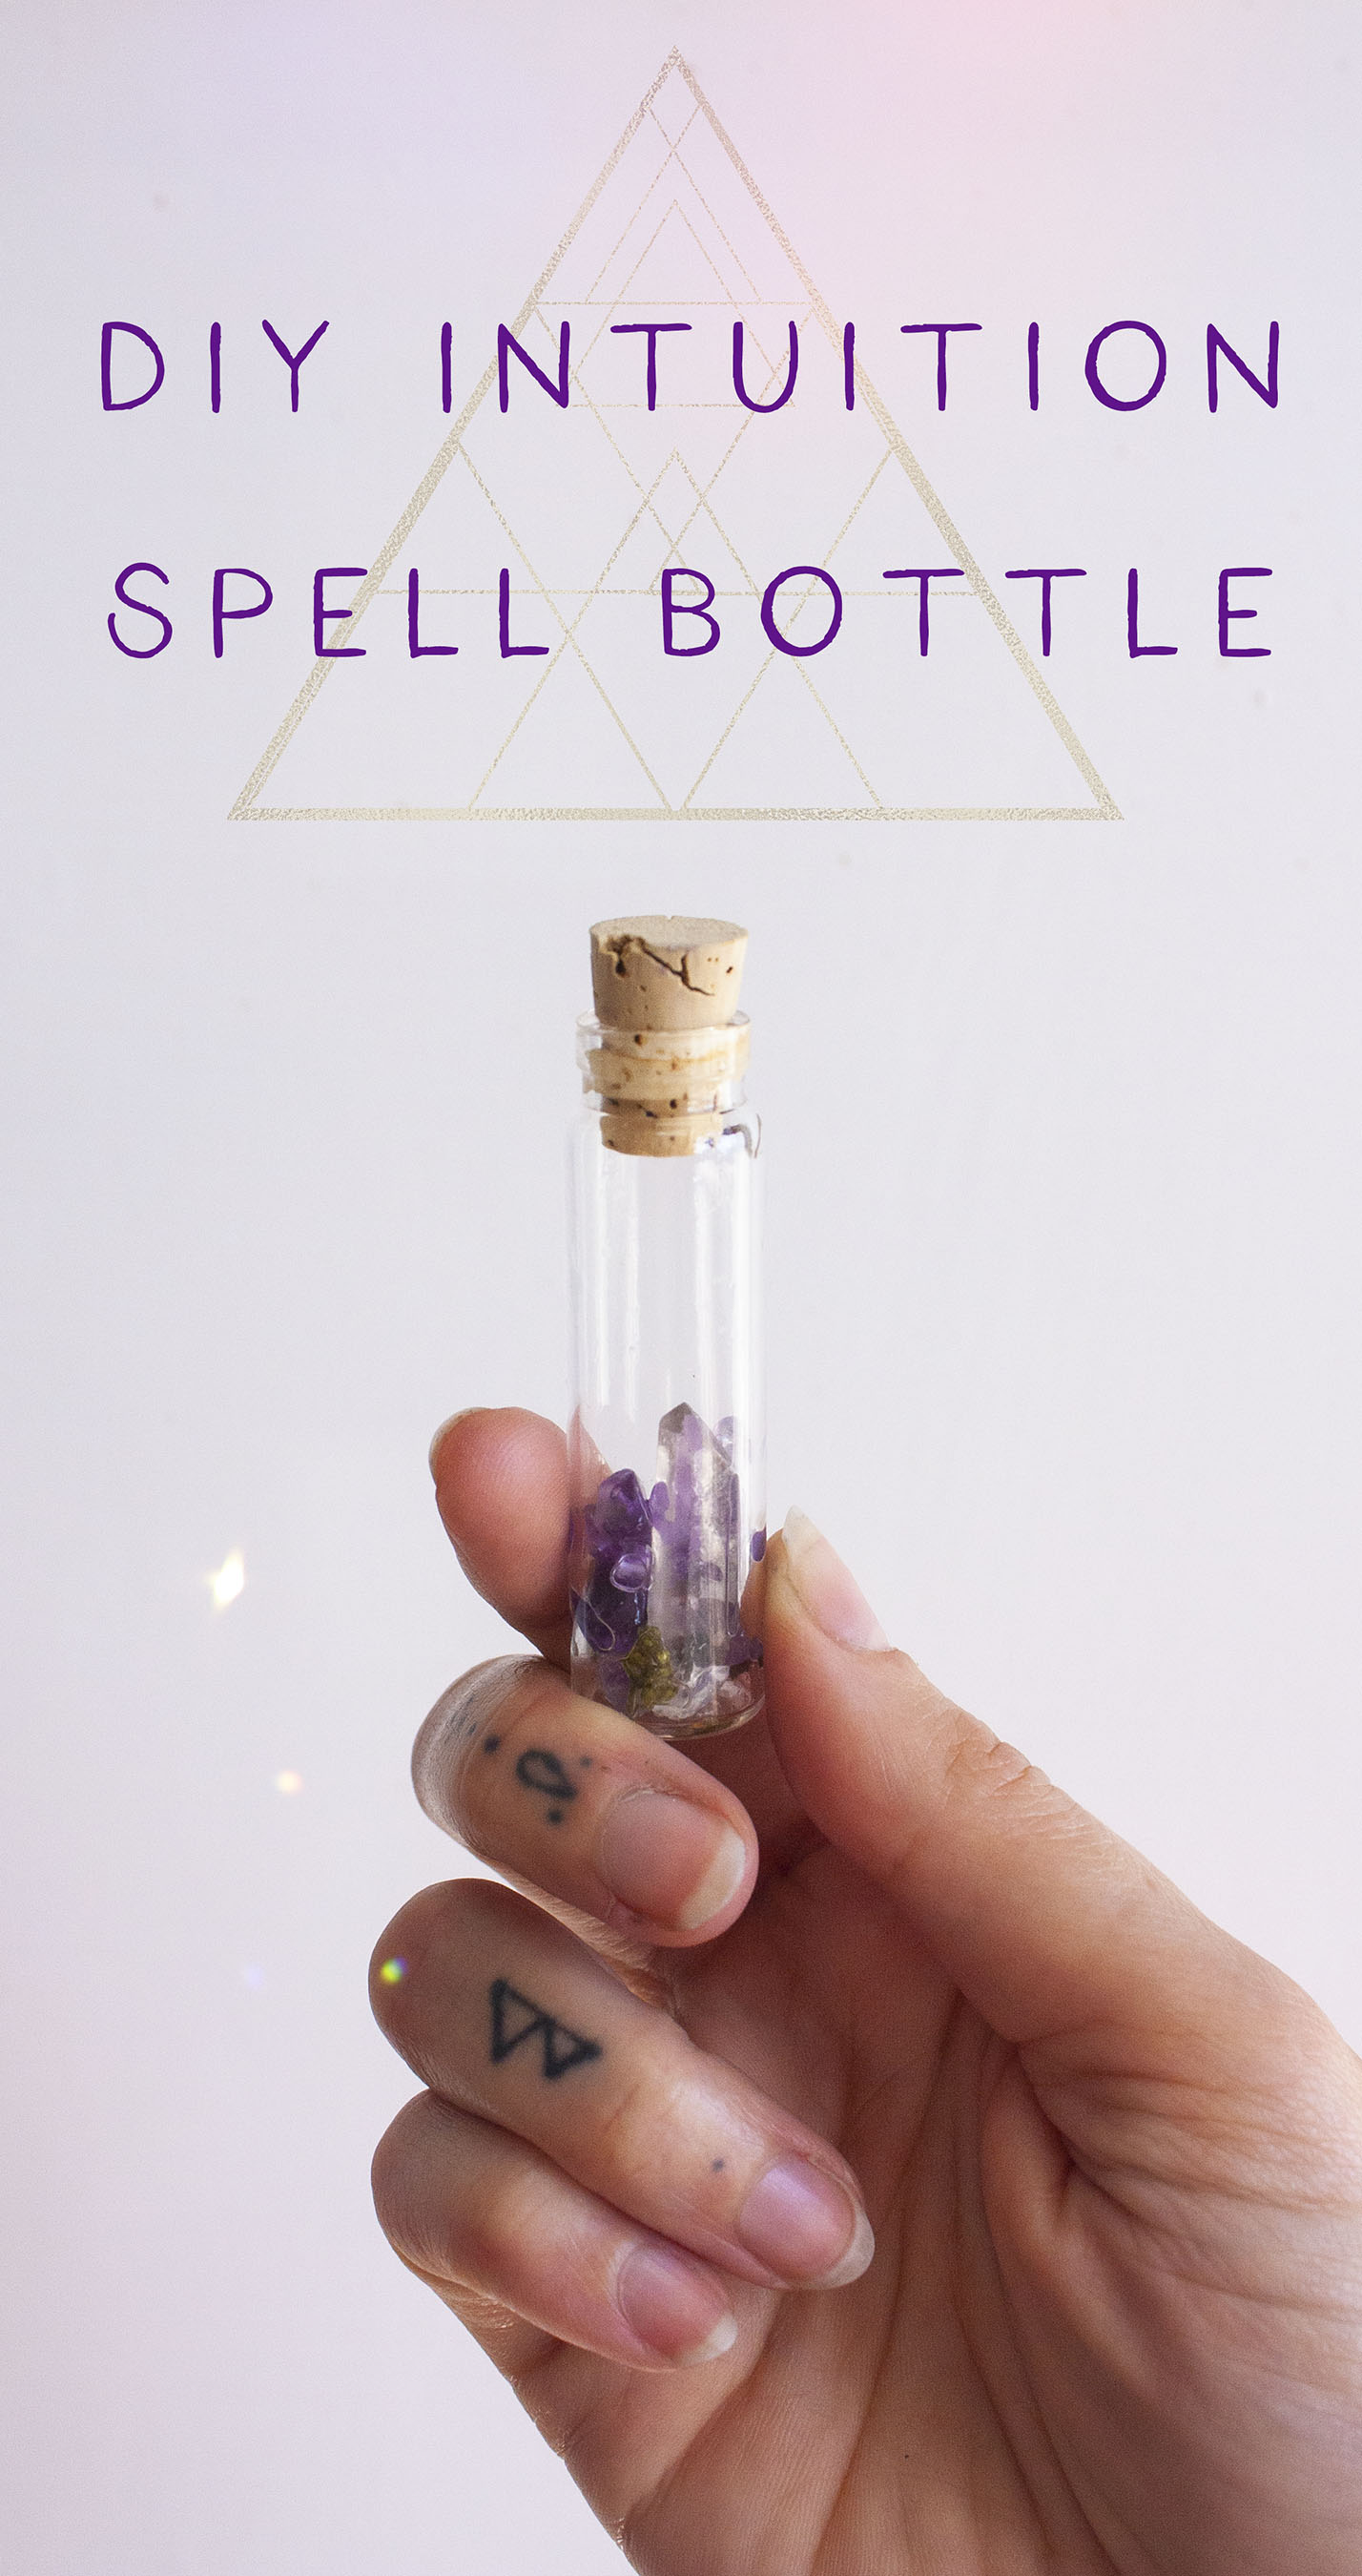 DIY-intuition-spell-bottle-intuition-magic